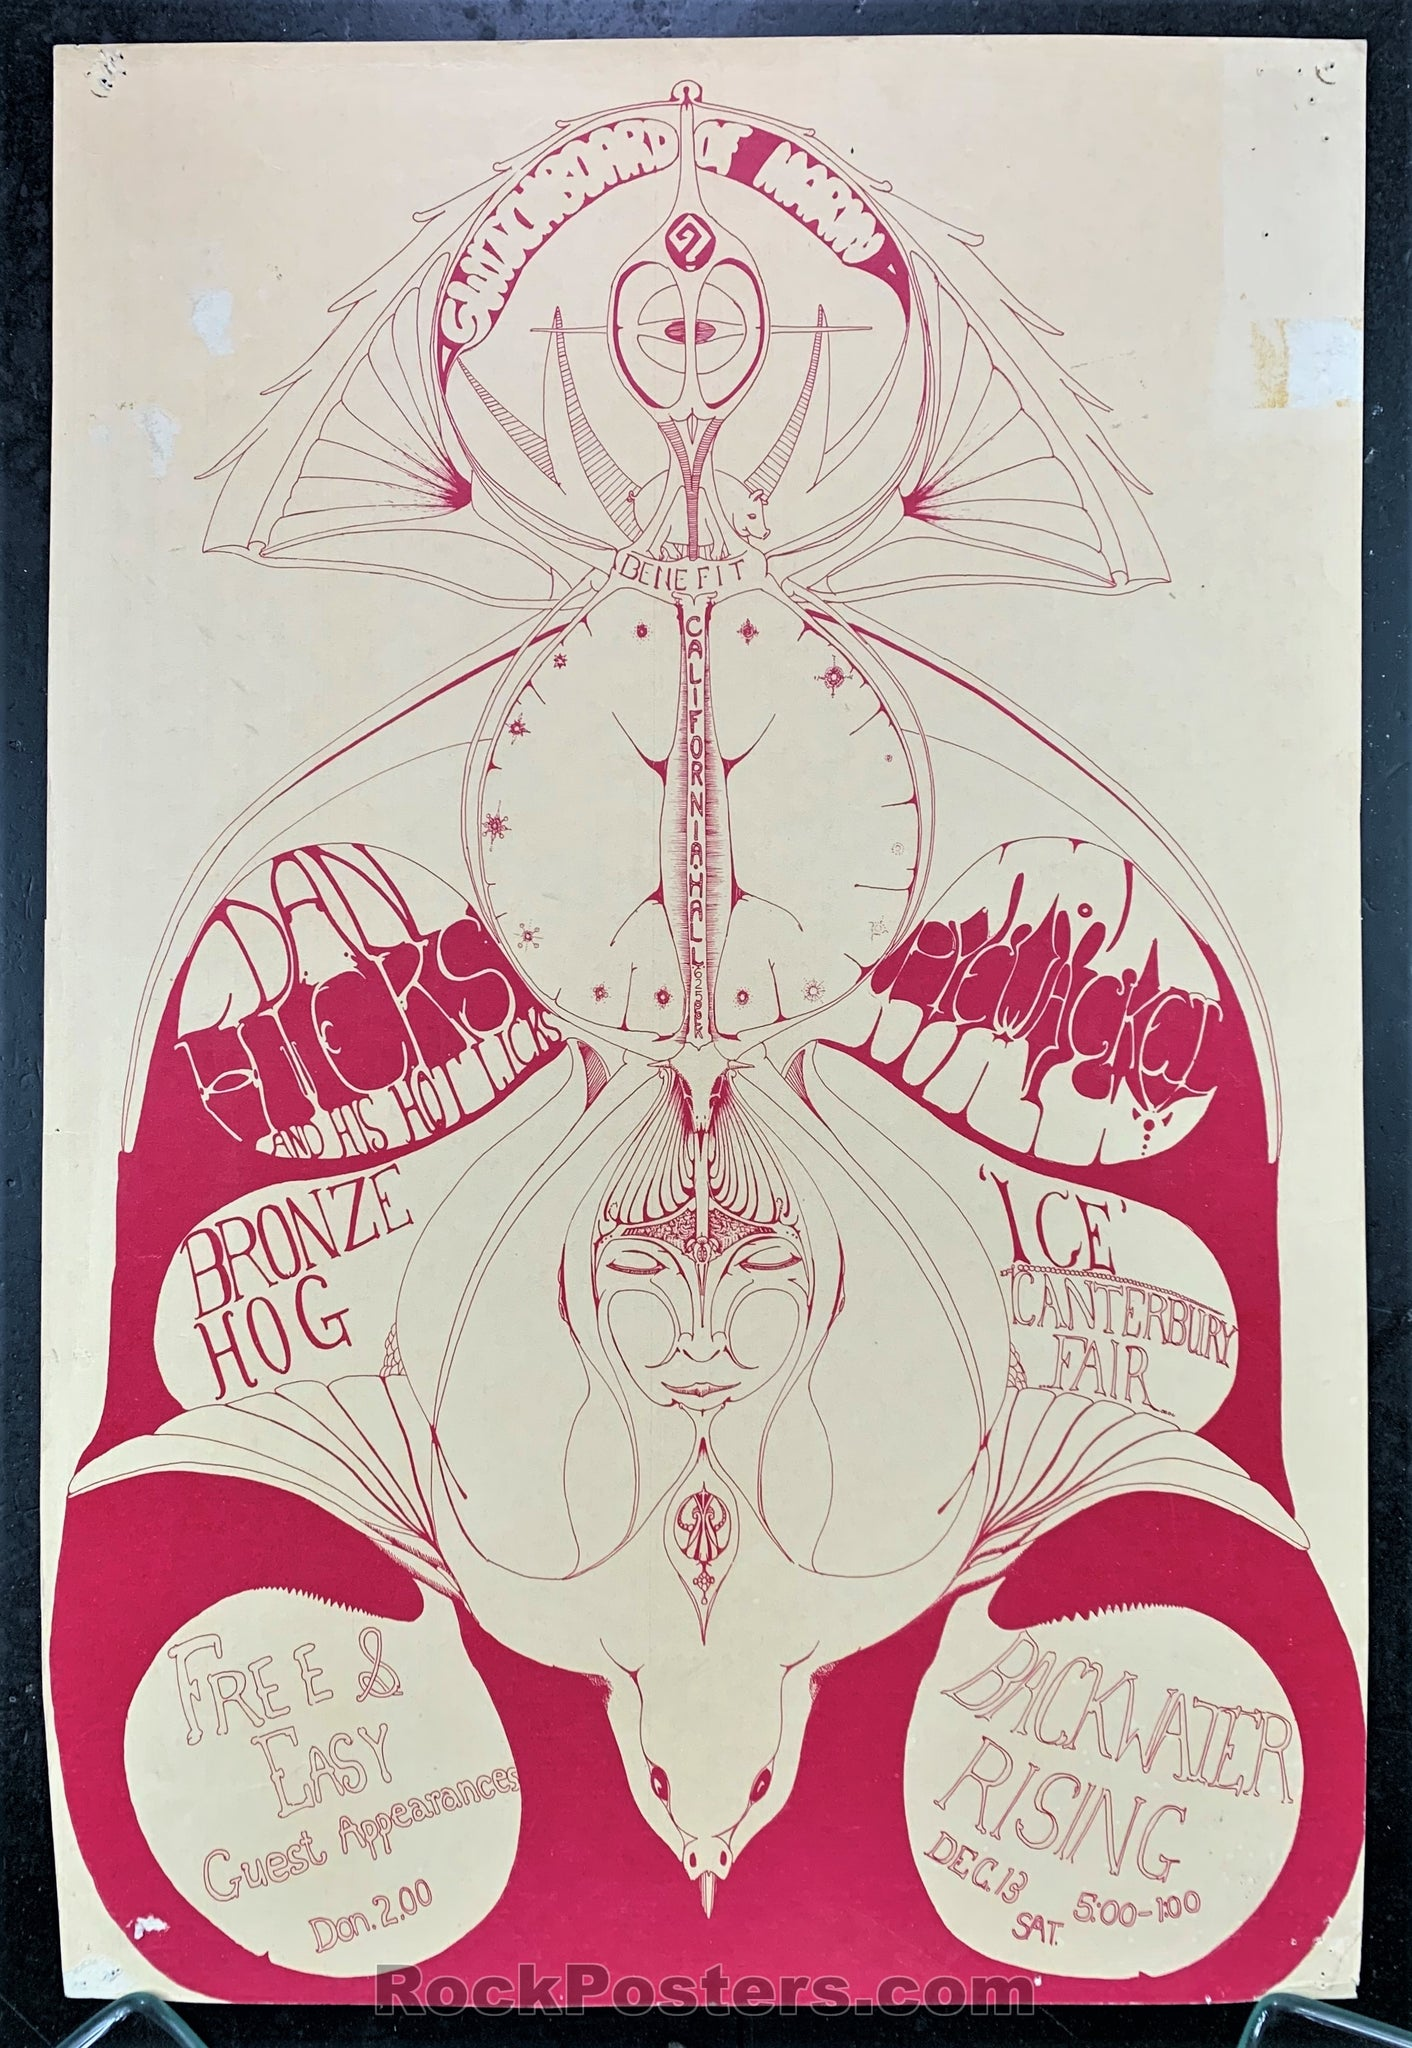 AUCTION - Dan Hicks -  Psychedelic Benefit 1969 Concert Poster - California Hall - Condition - Good